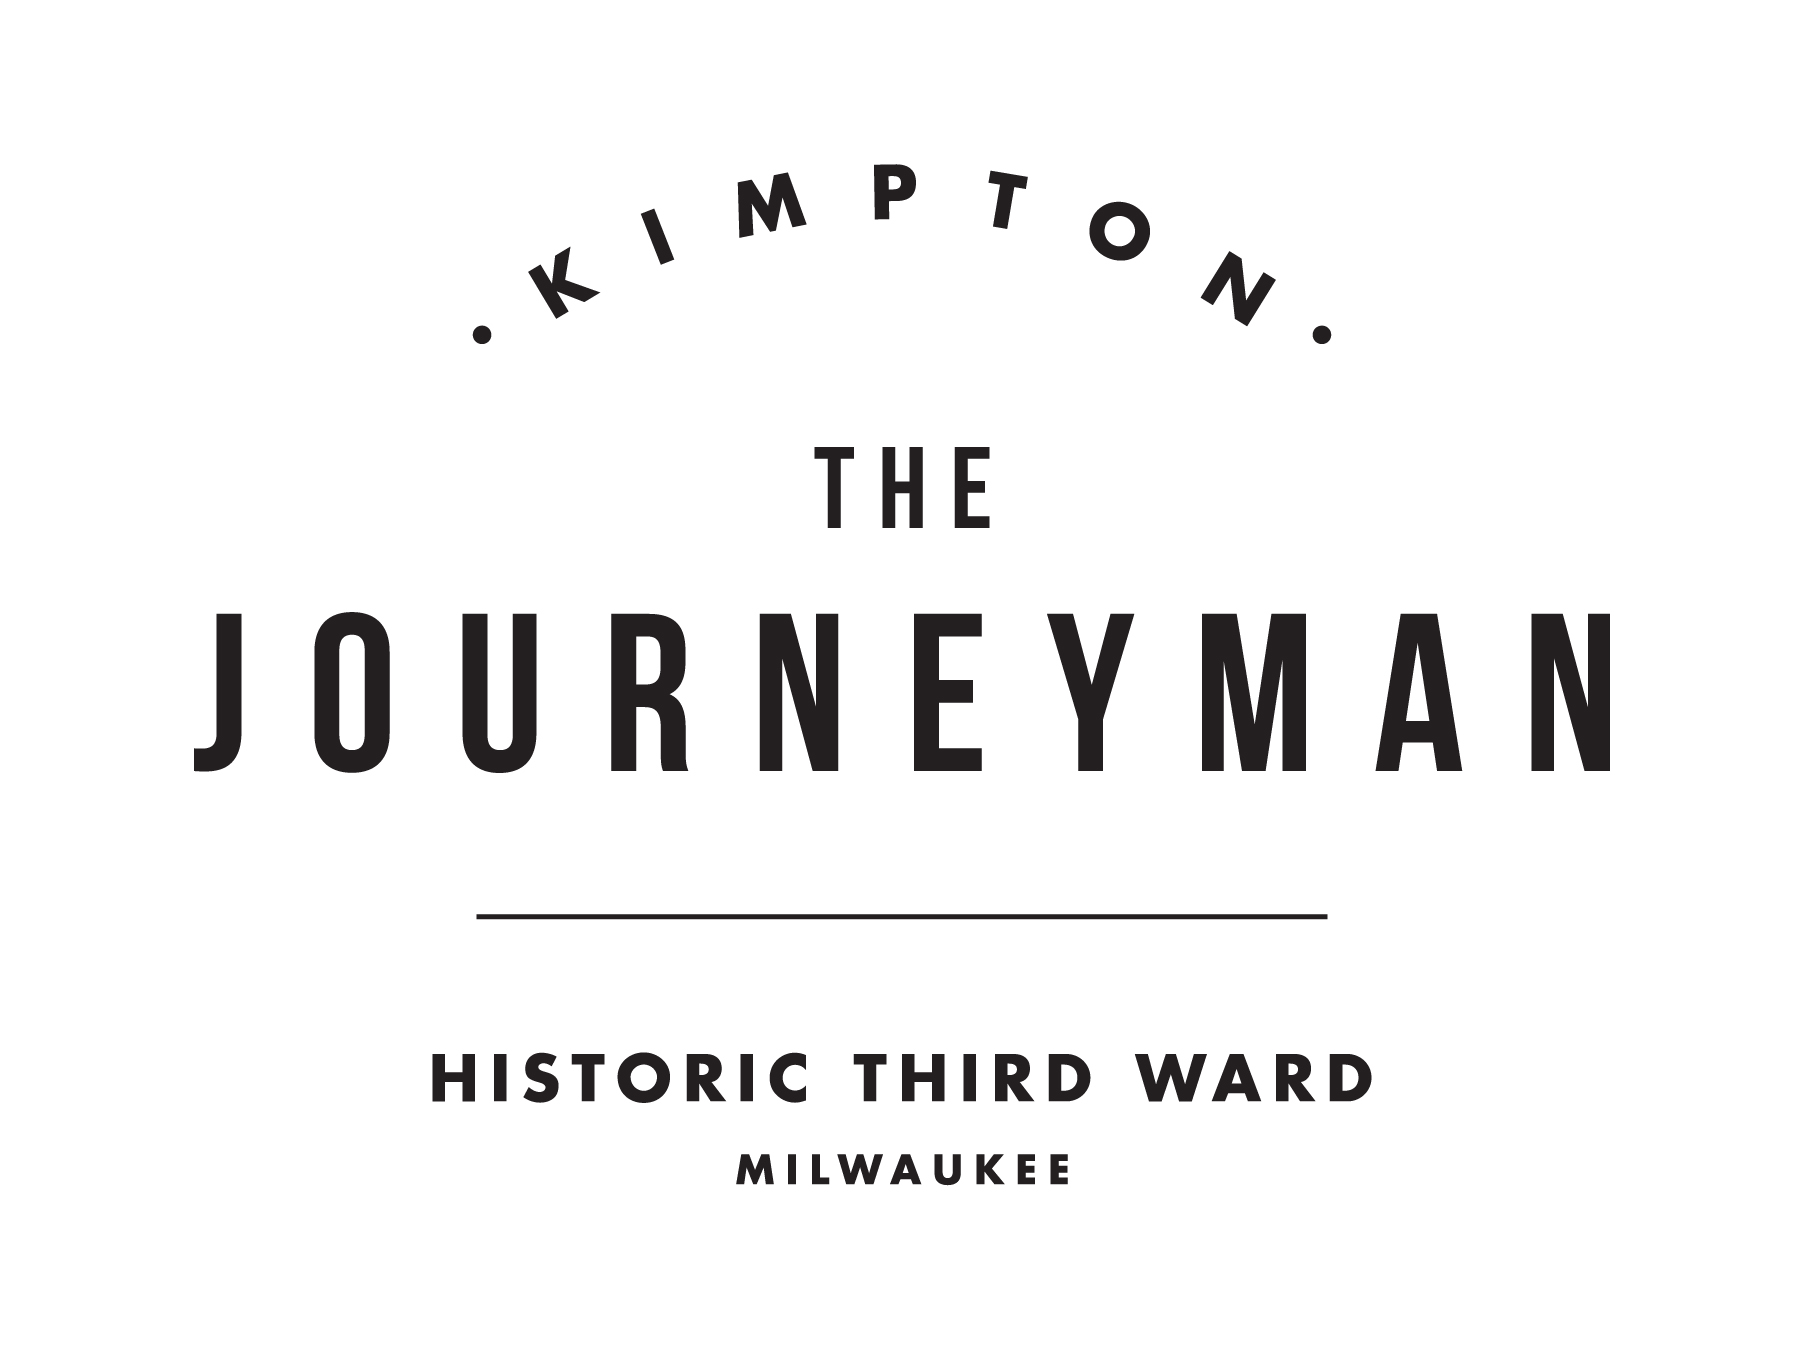 The_Journeyman_logo_simplified_K.JPG